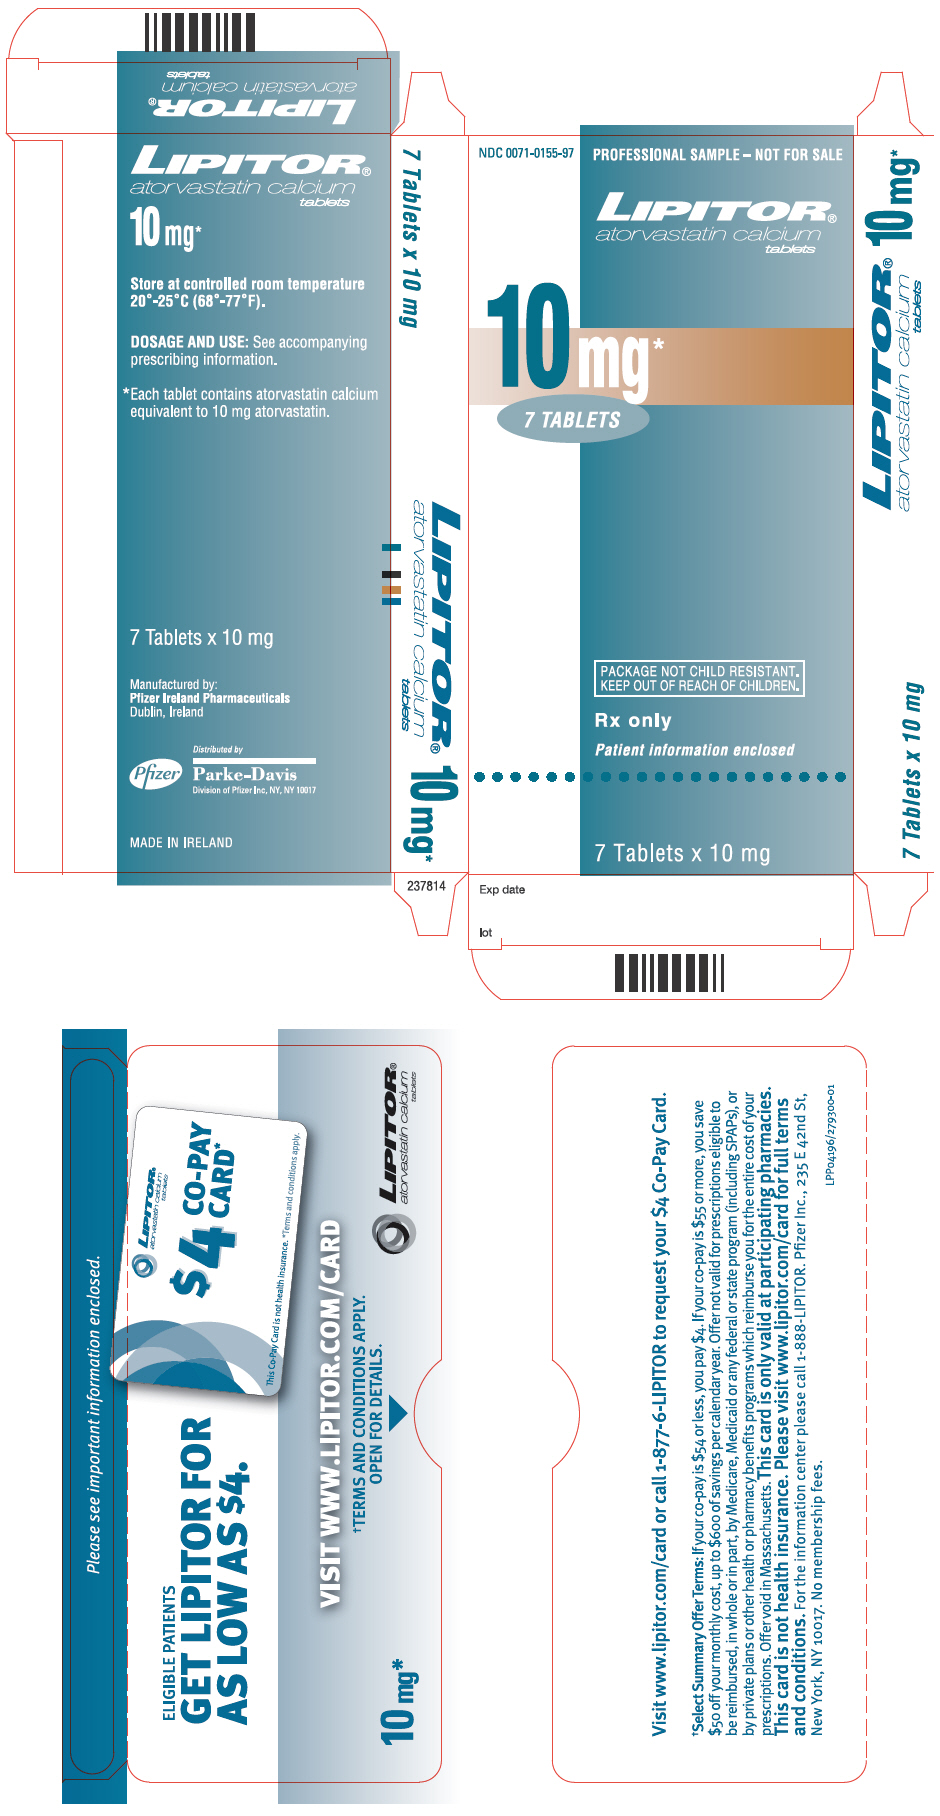 PRINCIPAL DISPLAY PANEL - 10 mg Tablet Packet Carton